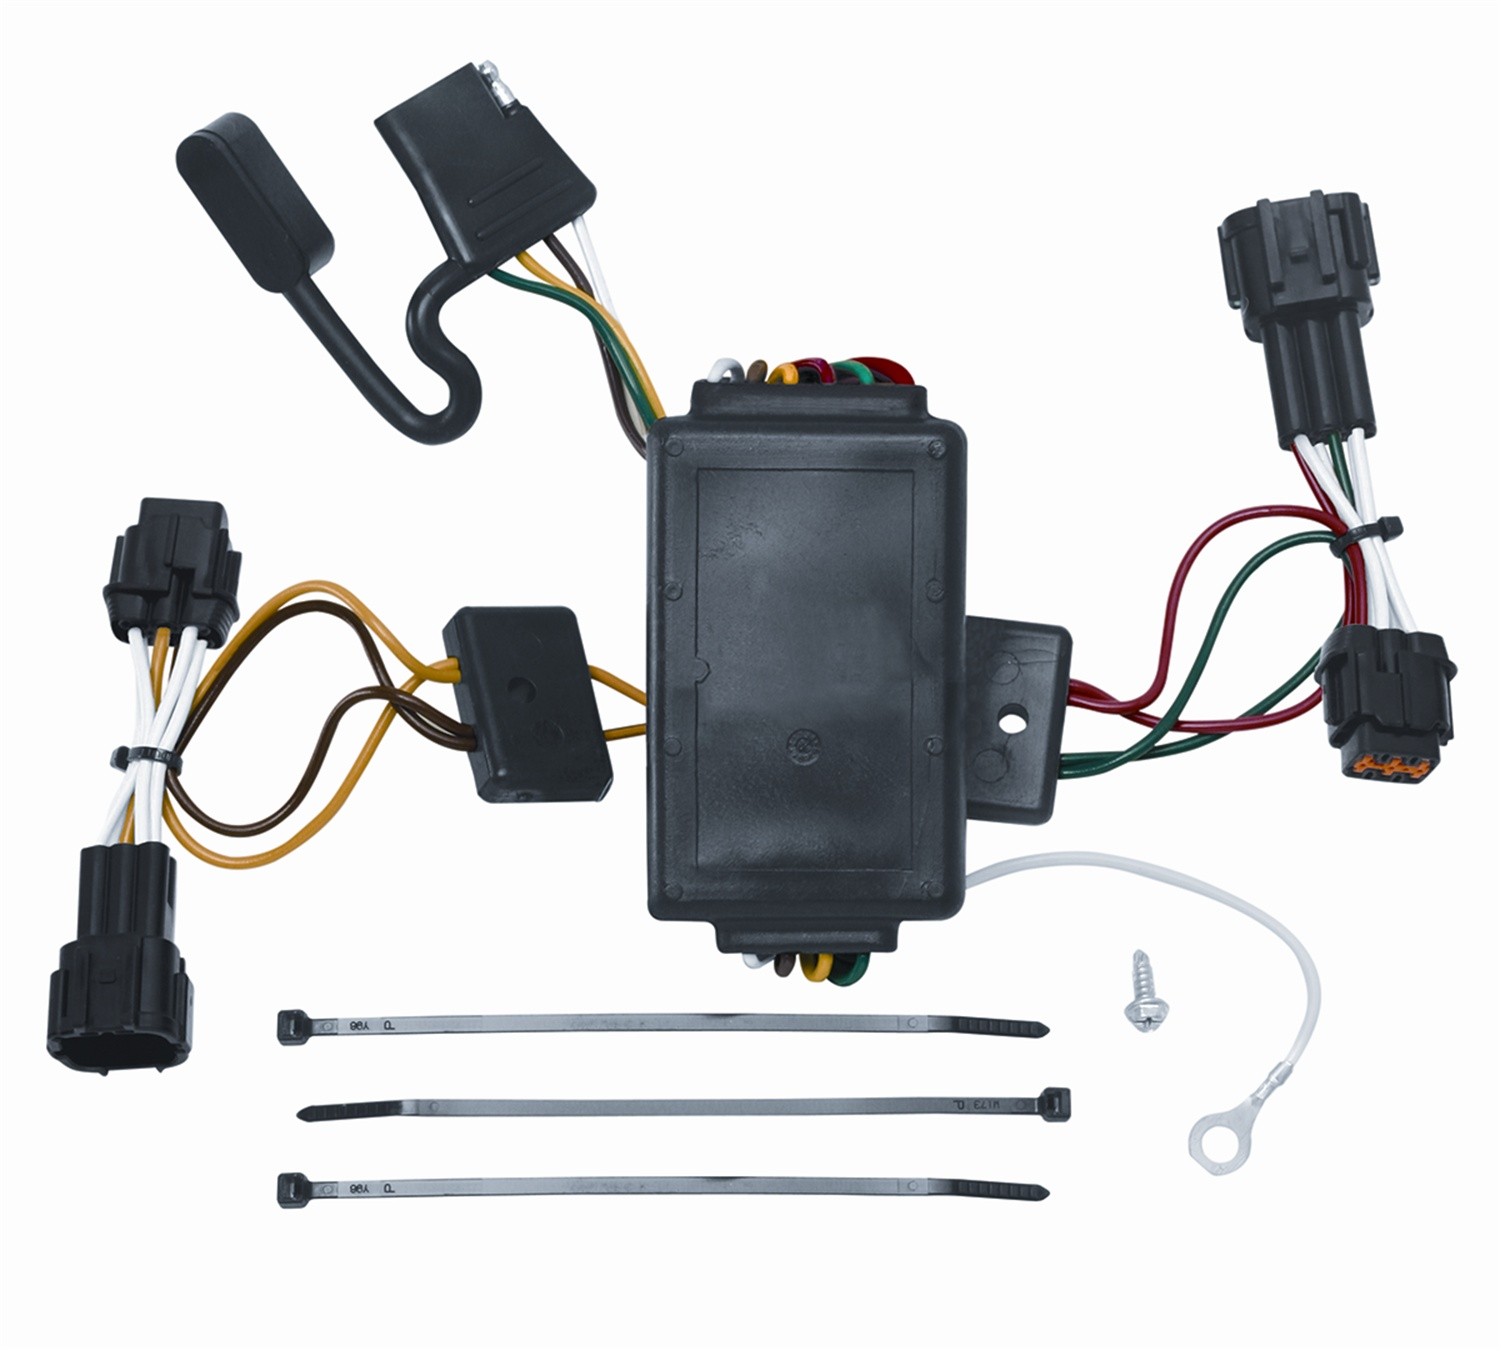 Vehicle To Trailer Wiring Harness Connector For 09-12 Nissan Cube Plug Play  - Walmart.com